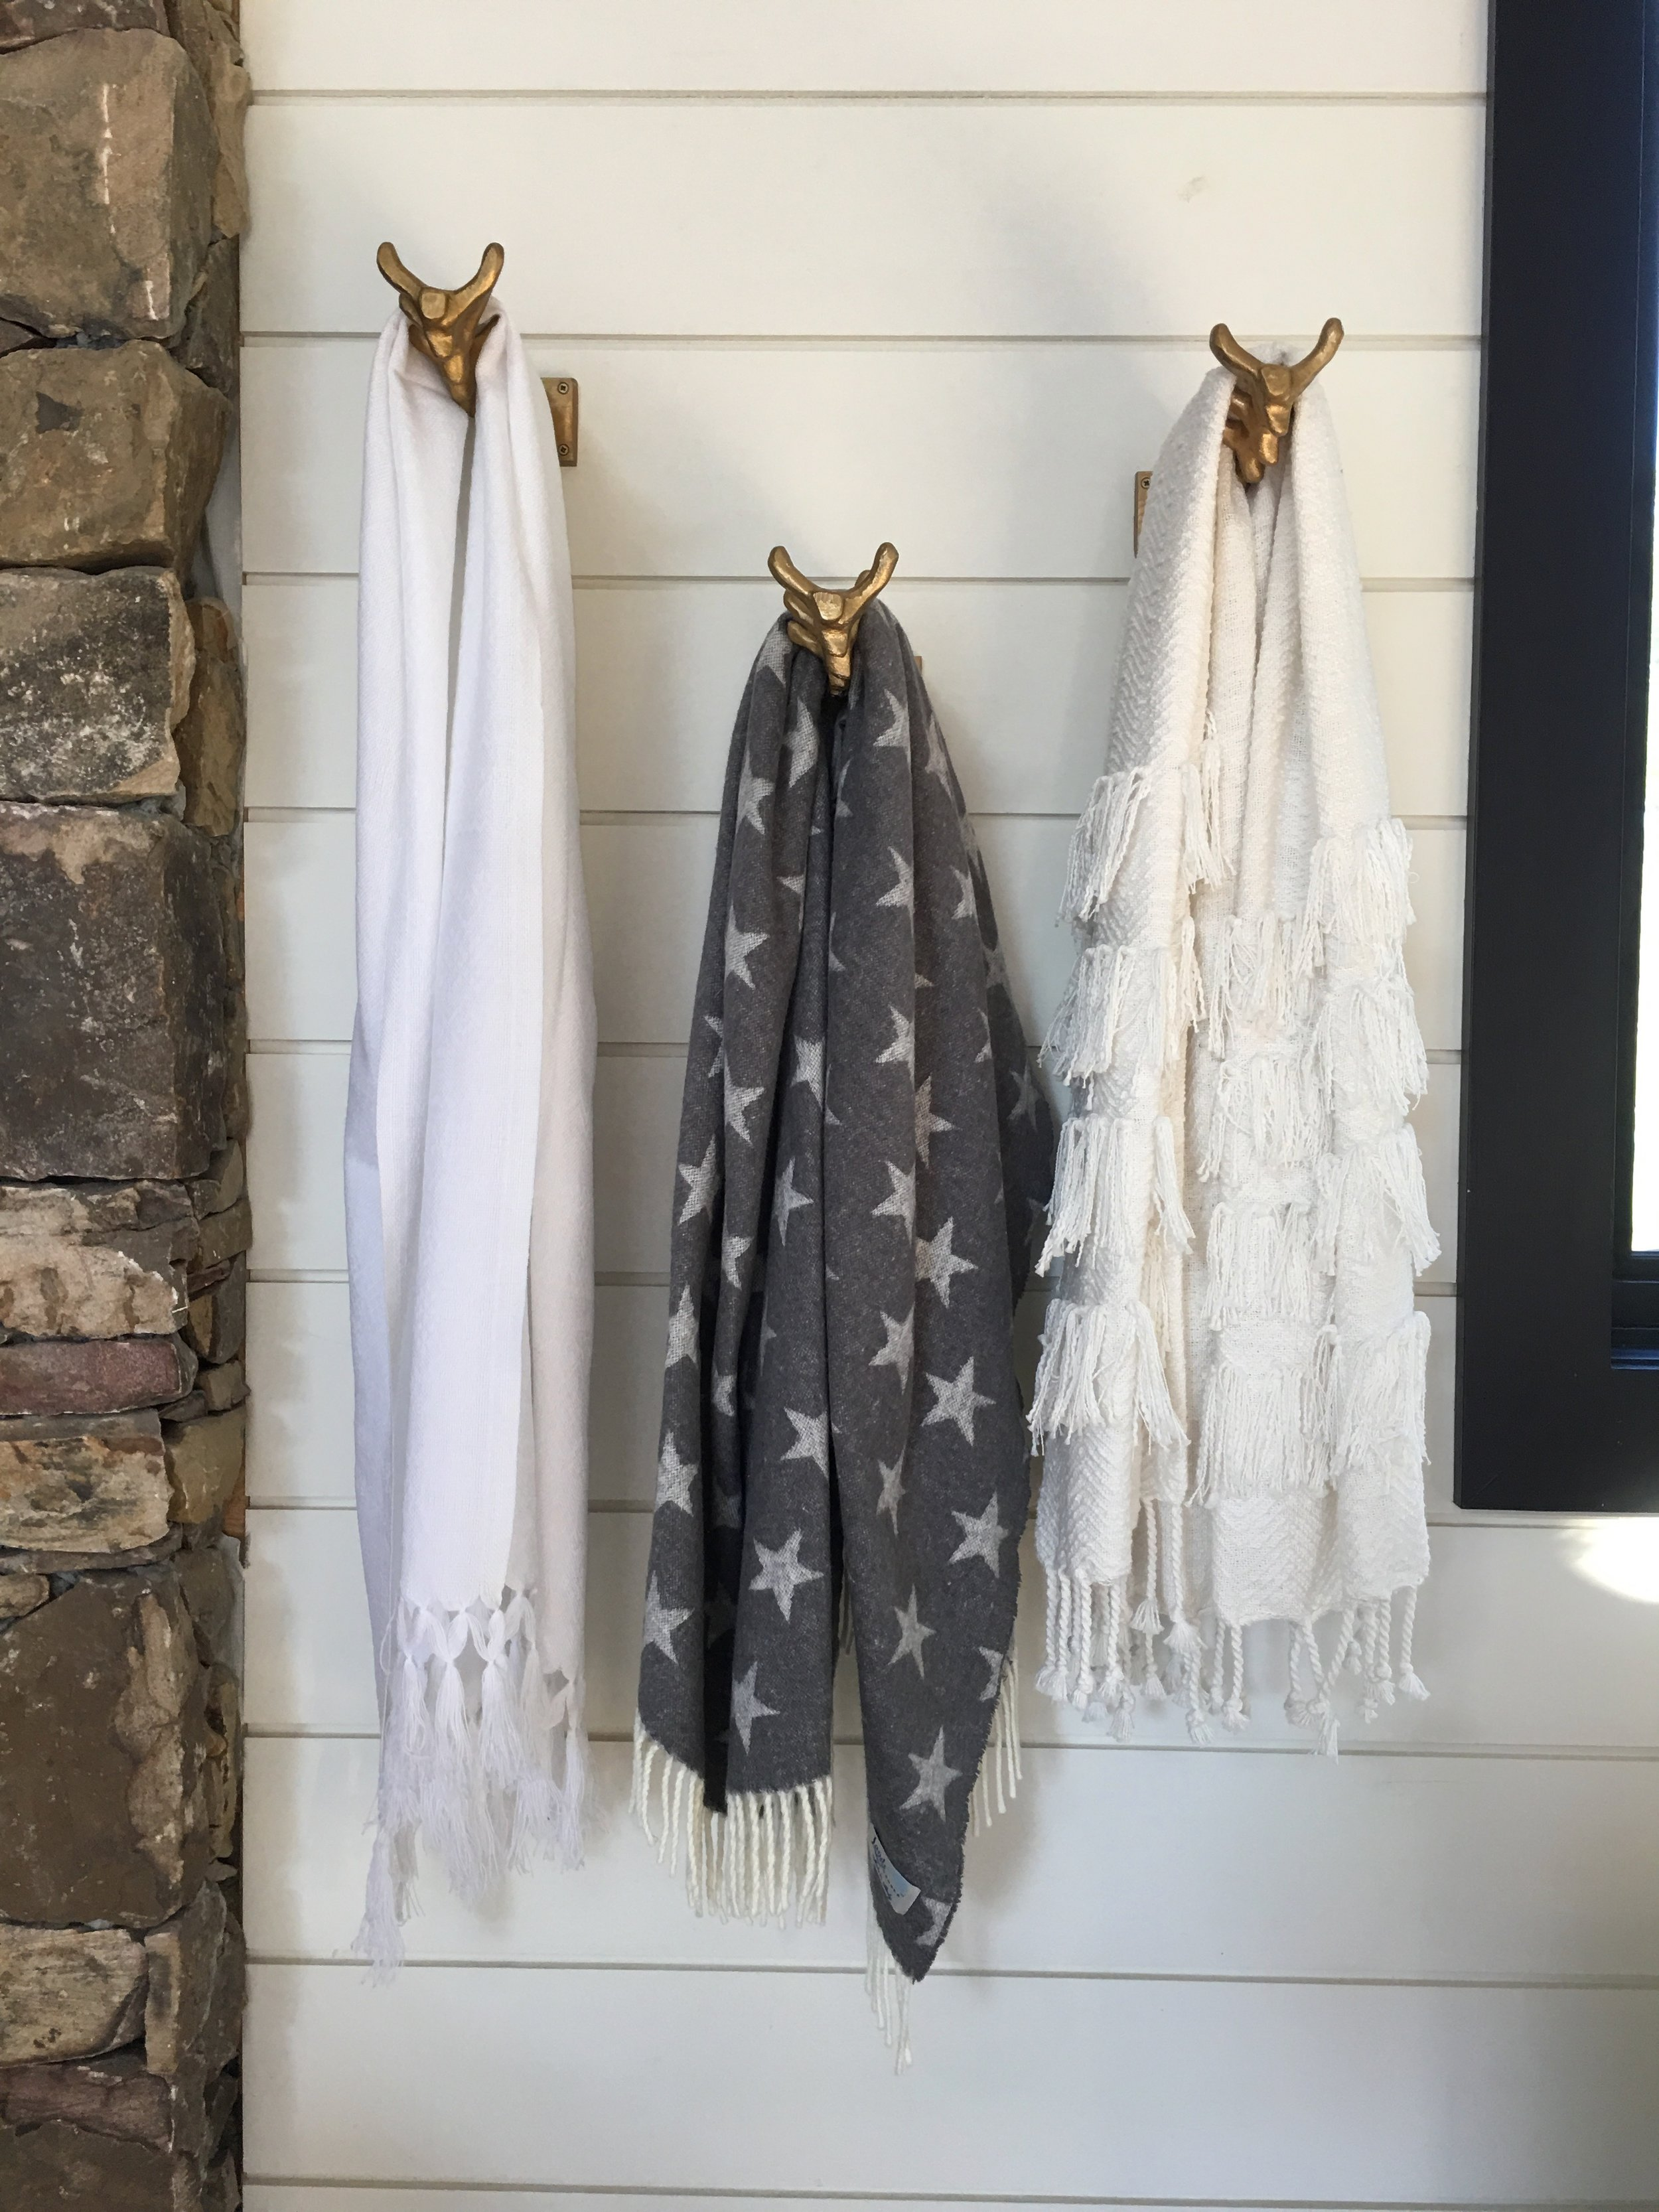 White and Grey towels on gold wall hooks